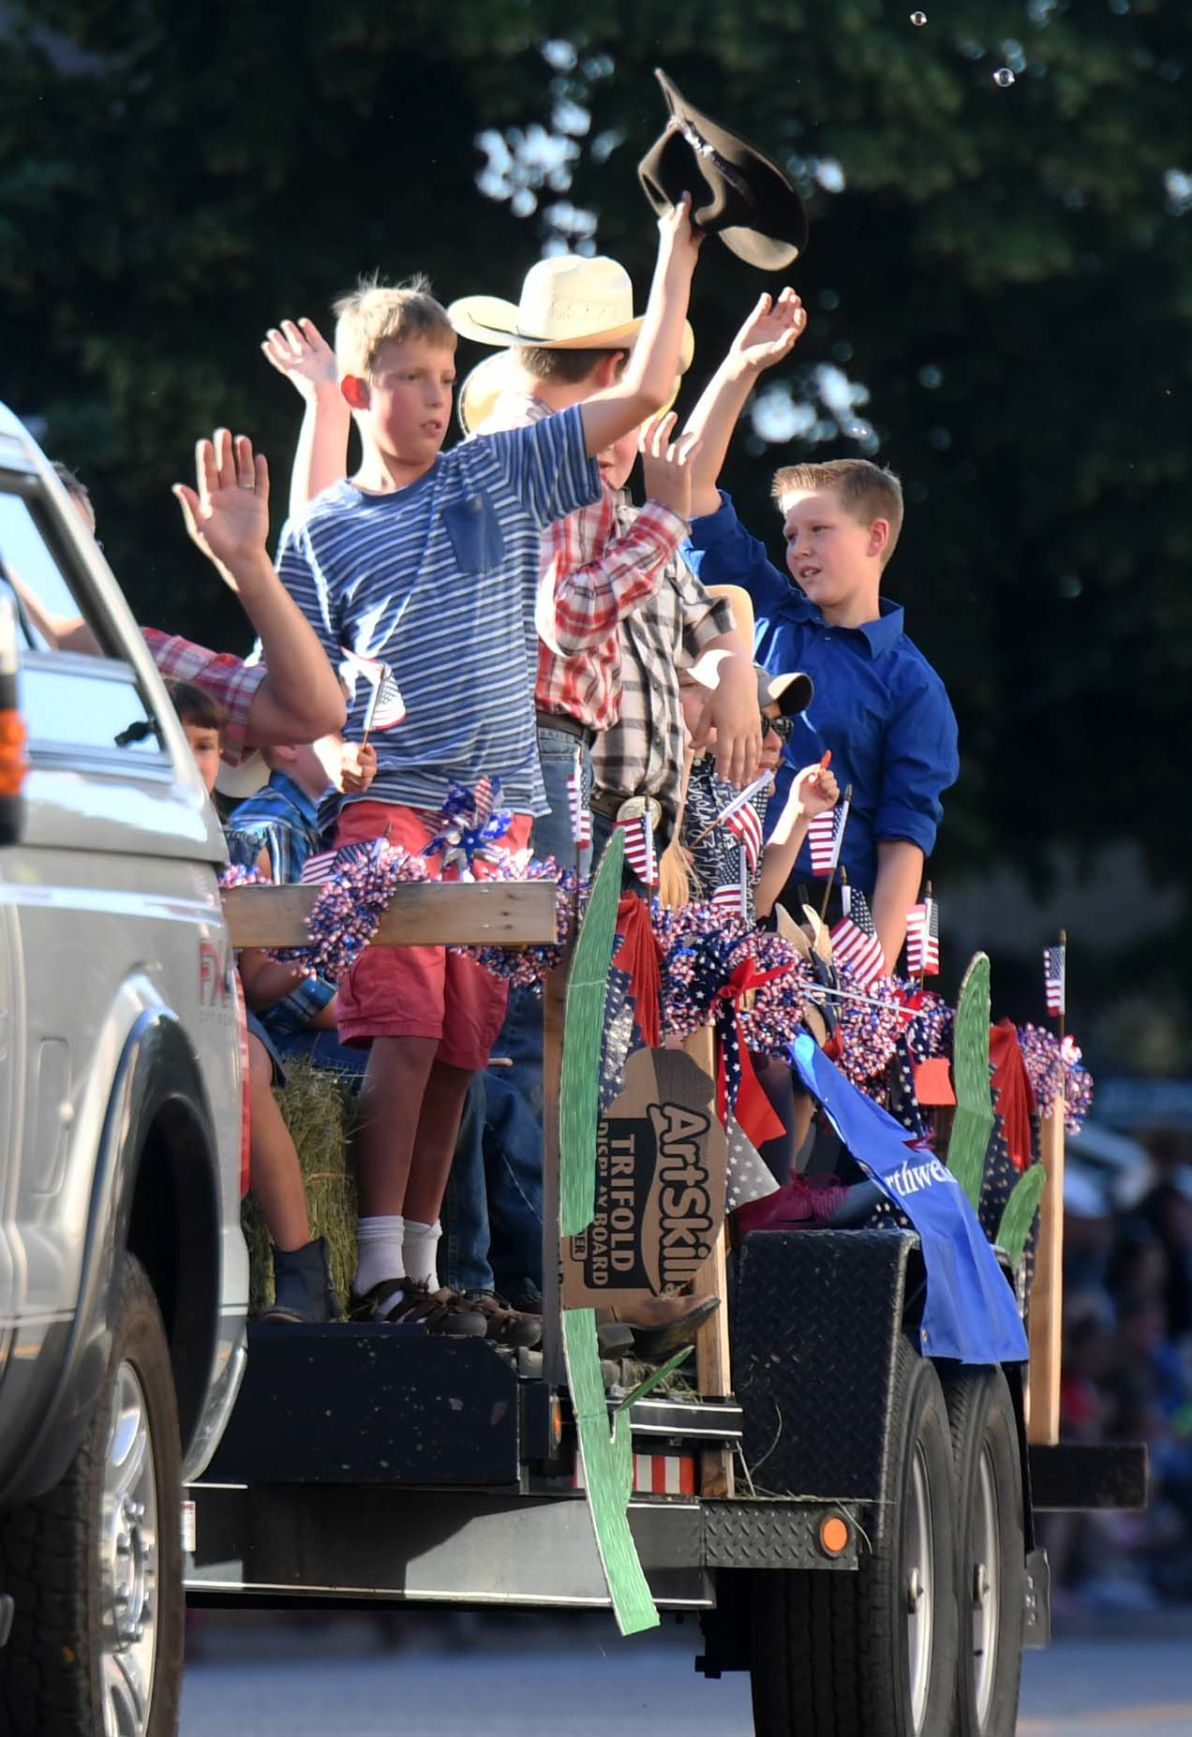 Pikes Peak or Bust Rodeo Parade kicks off 79th annual Western event